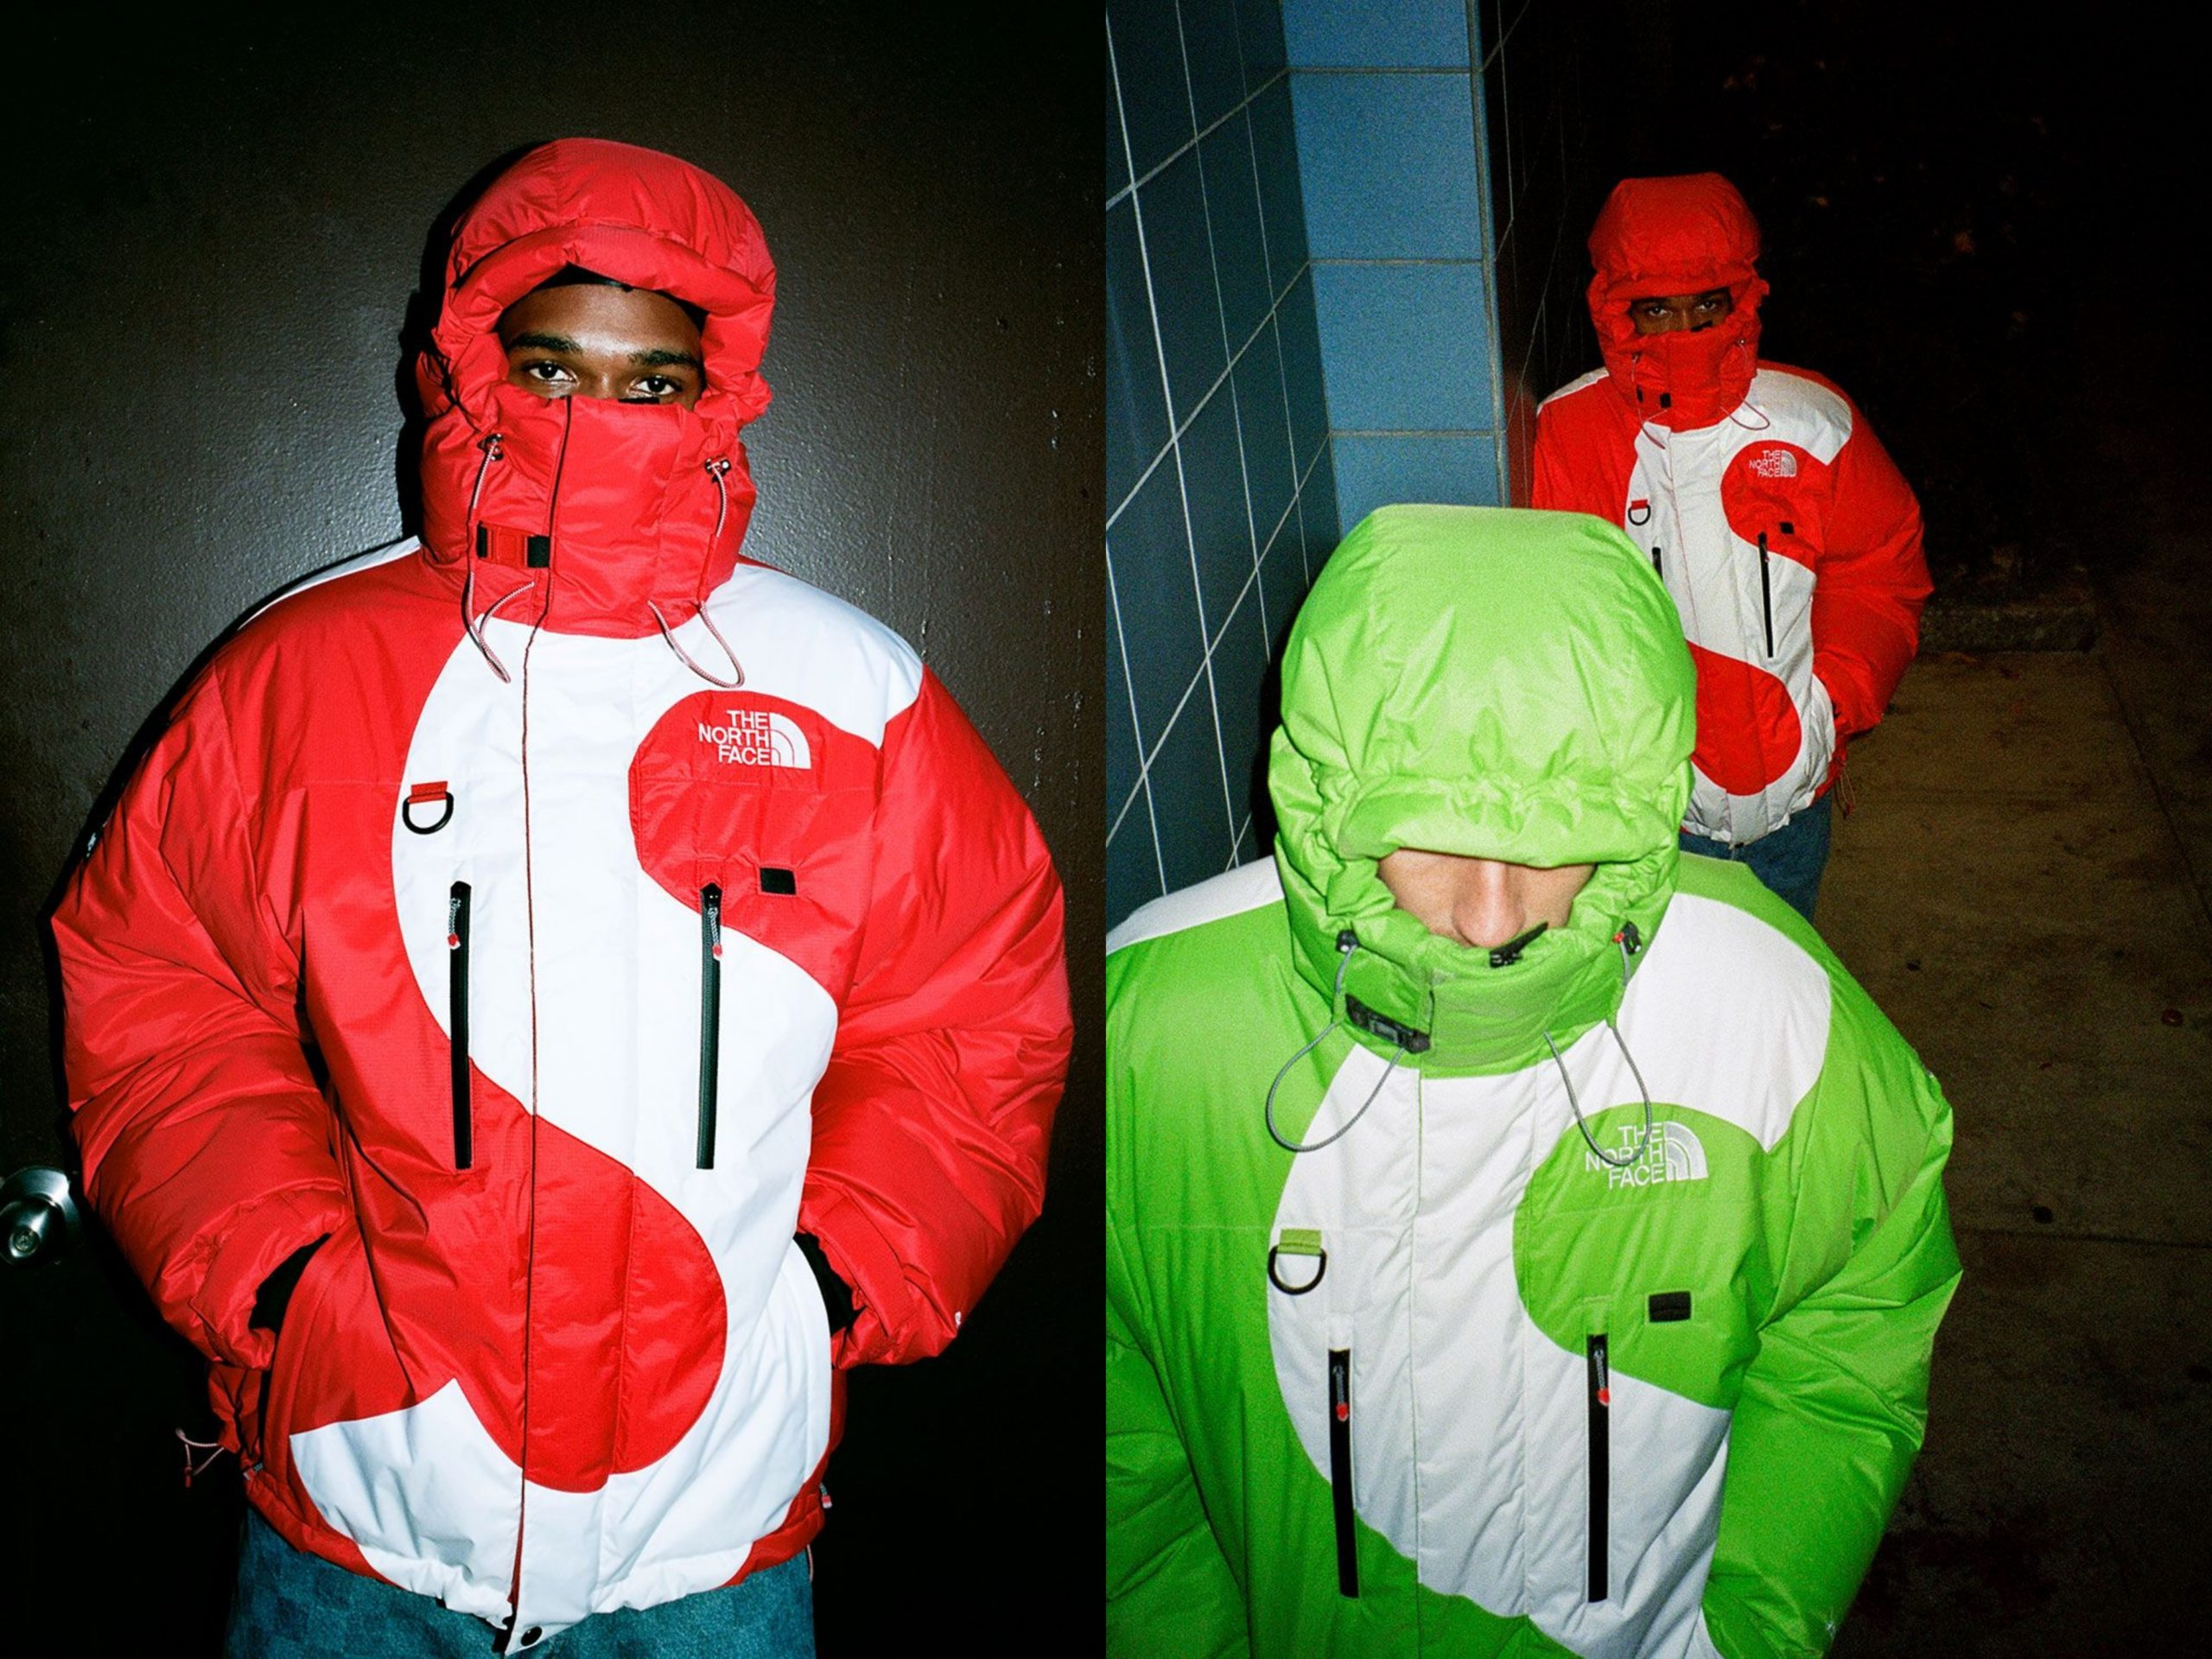 Supreme x North Face Return for AW20